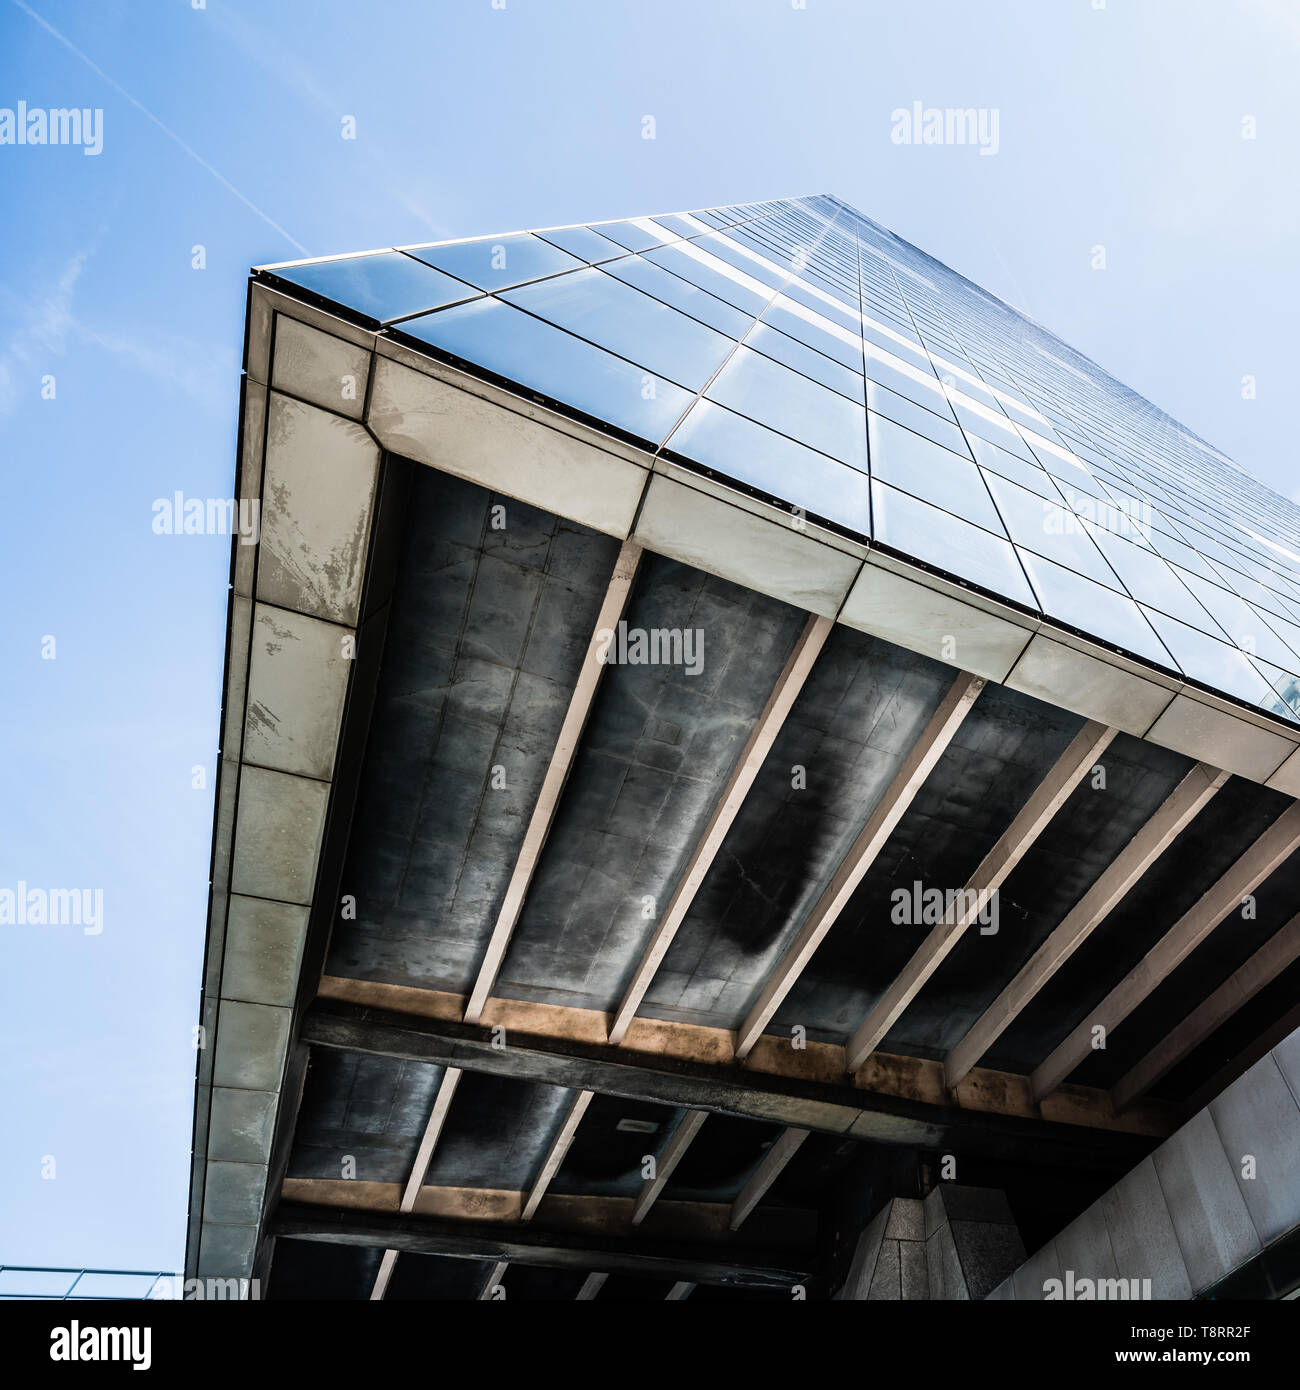 Brussels South / Belgium - 03 21 2018: The Brussels South Tour du Midi - Zuidertoren of the Belgian financial administration and pension tower - Stock Image